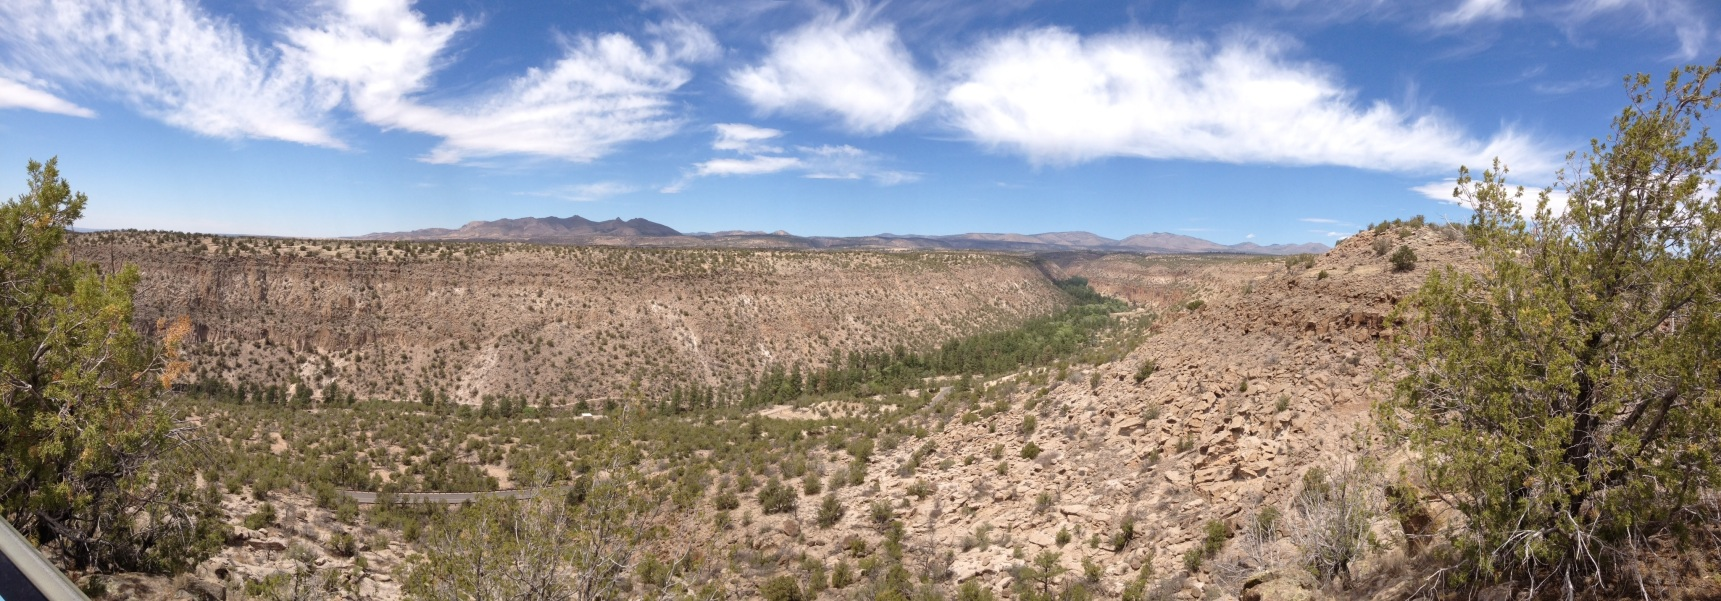 Scenic overlook at Bandelier